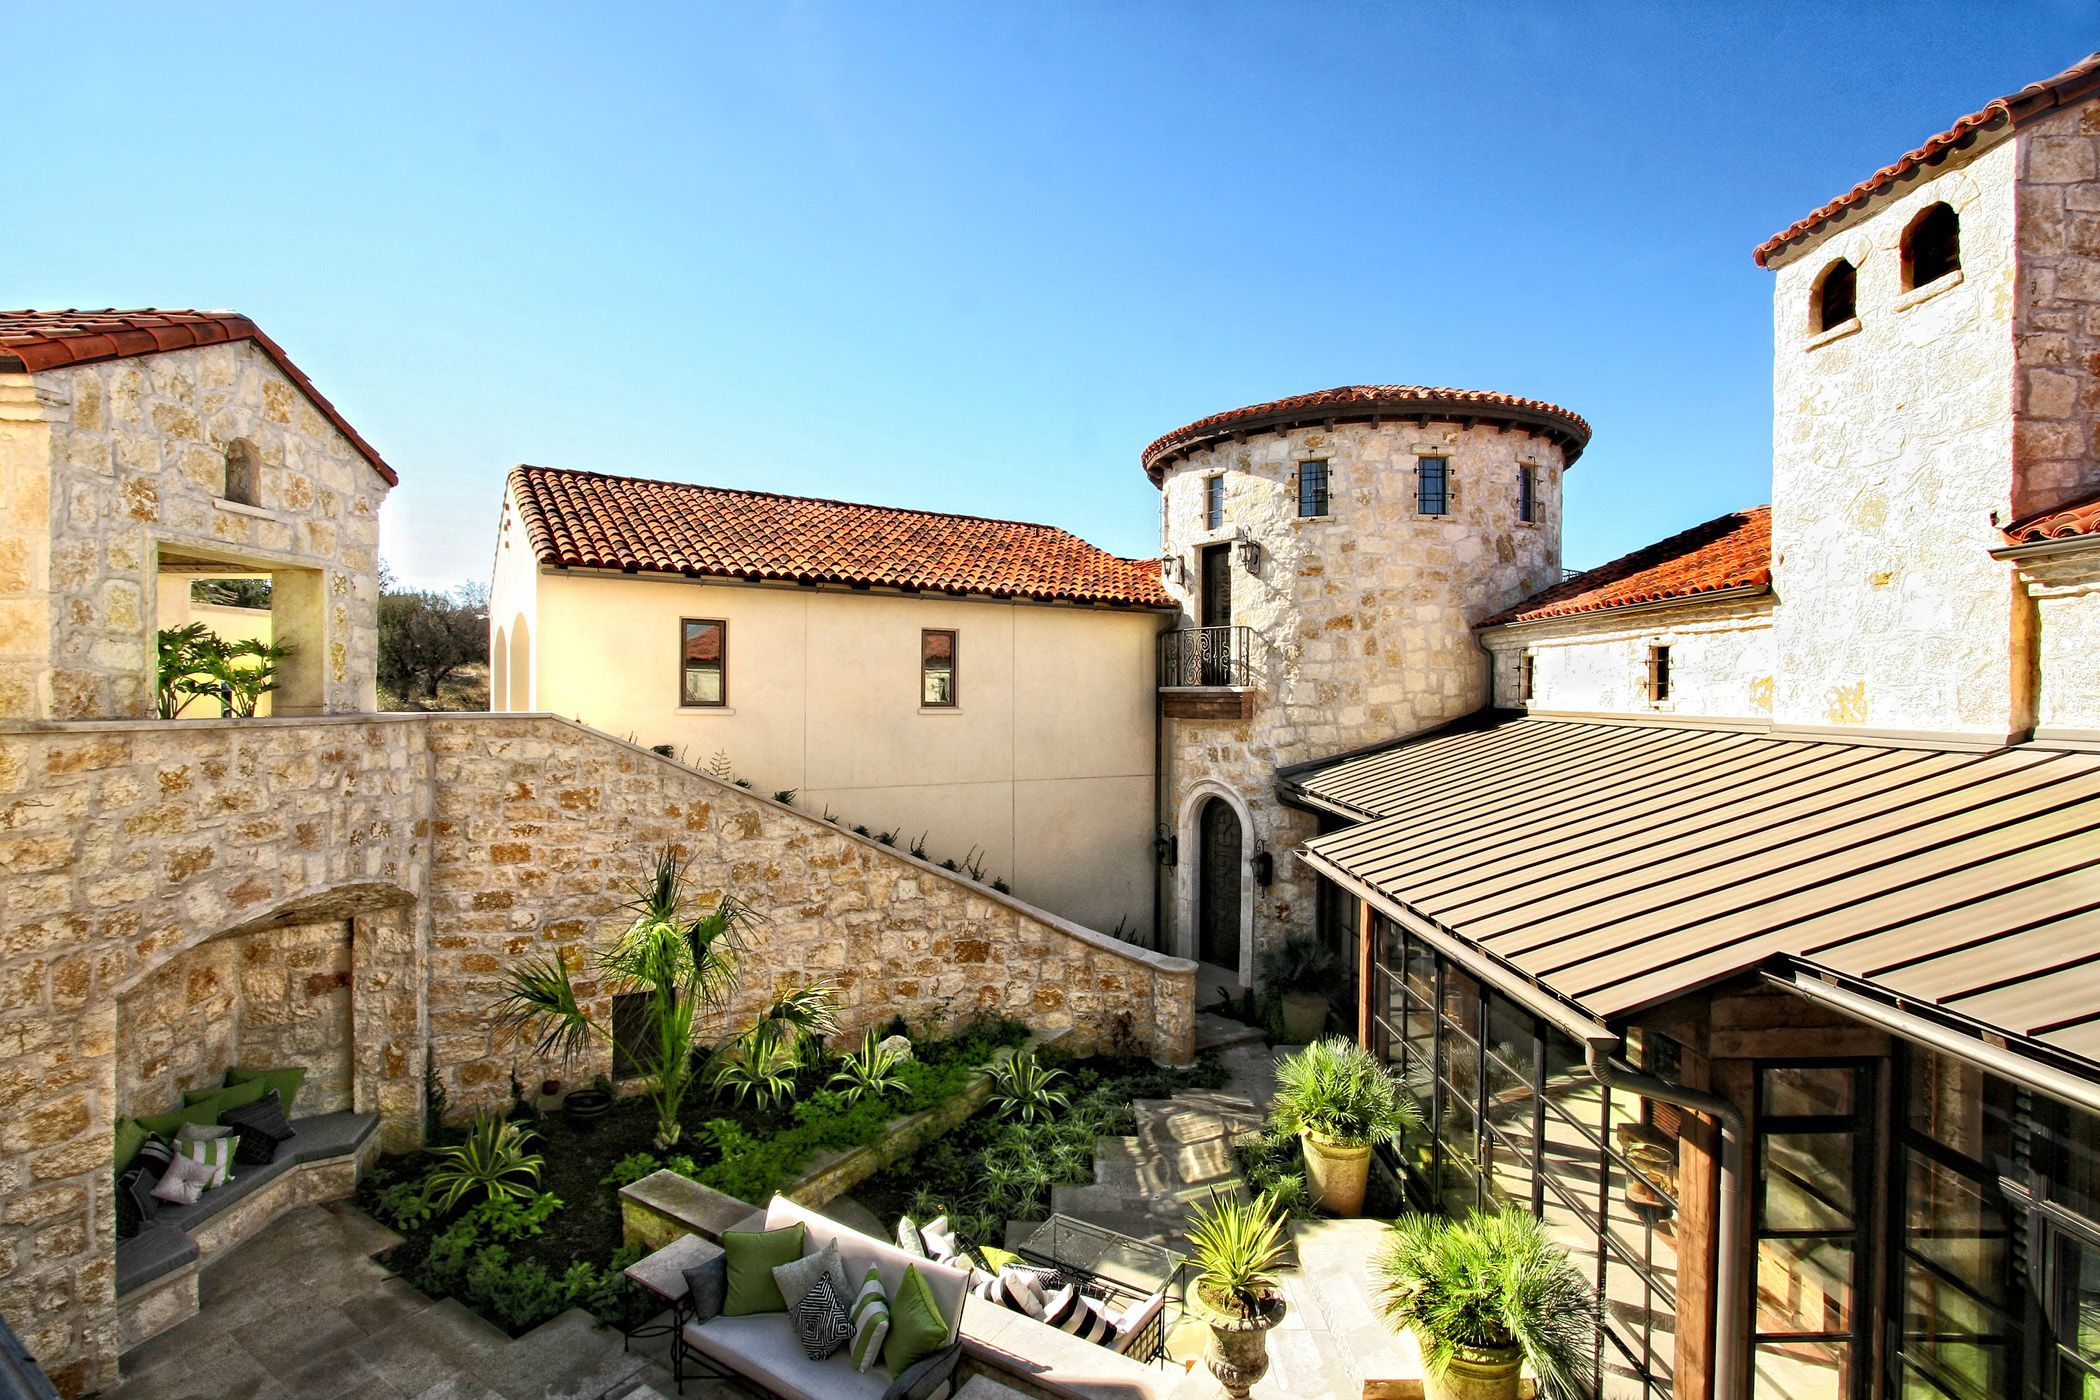 Horseshoe bay spanish style lake house courtyard by for Spanish style homes for sale near me